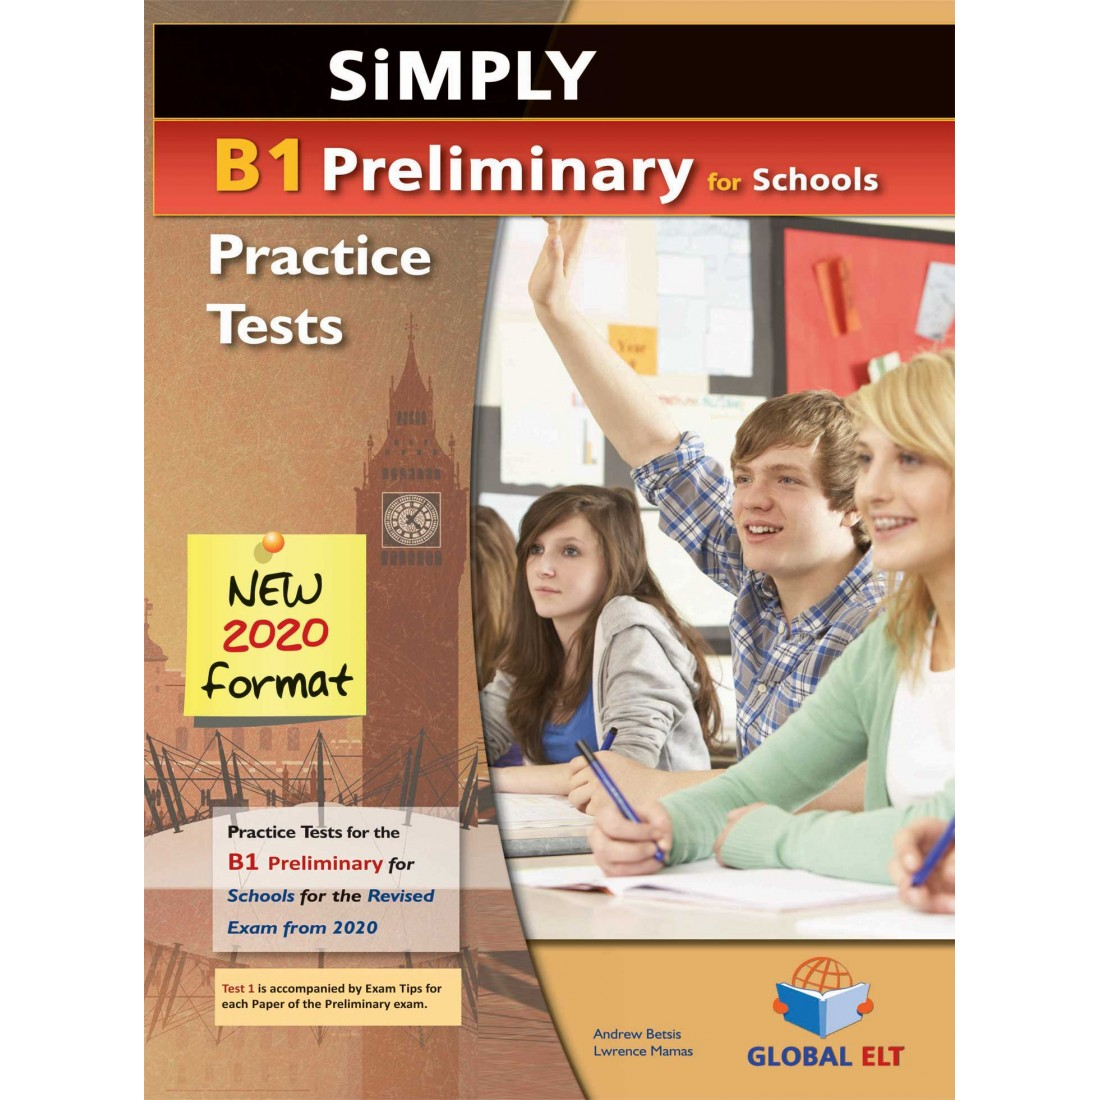 SIMPLY B1 PRELIMINARY FOR SCHOOLS 8 PRACTICE TESTS SELF STUDY EDITION NEW 2020 FORMAT